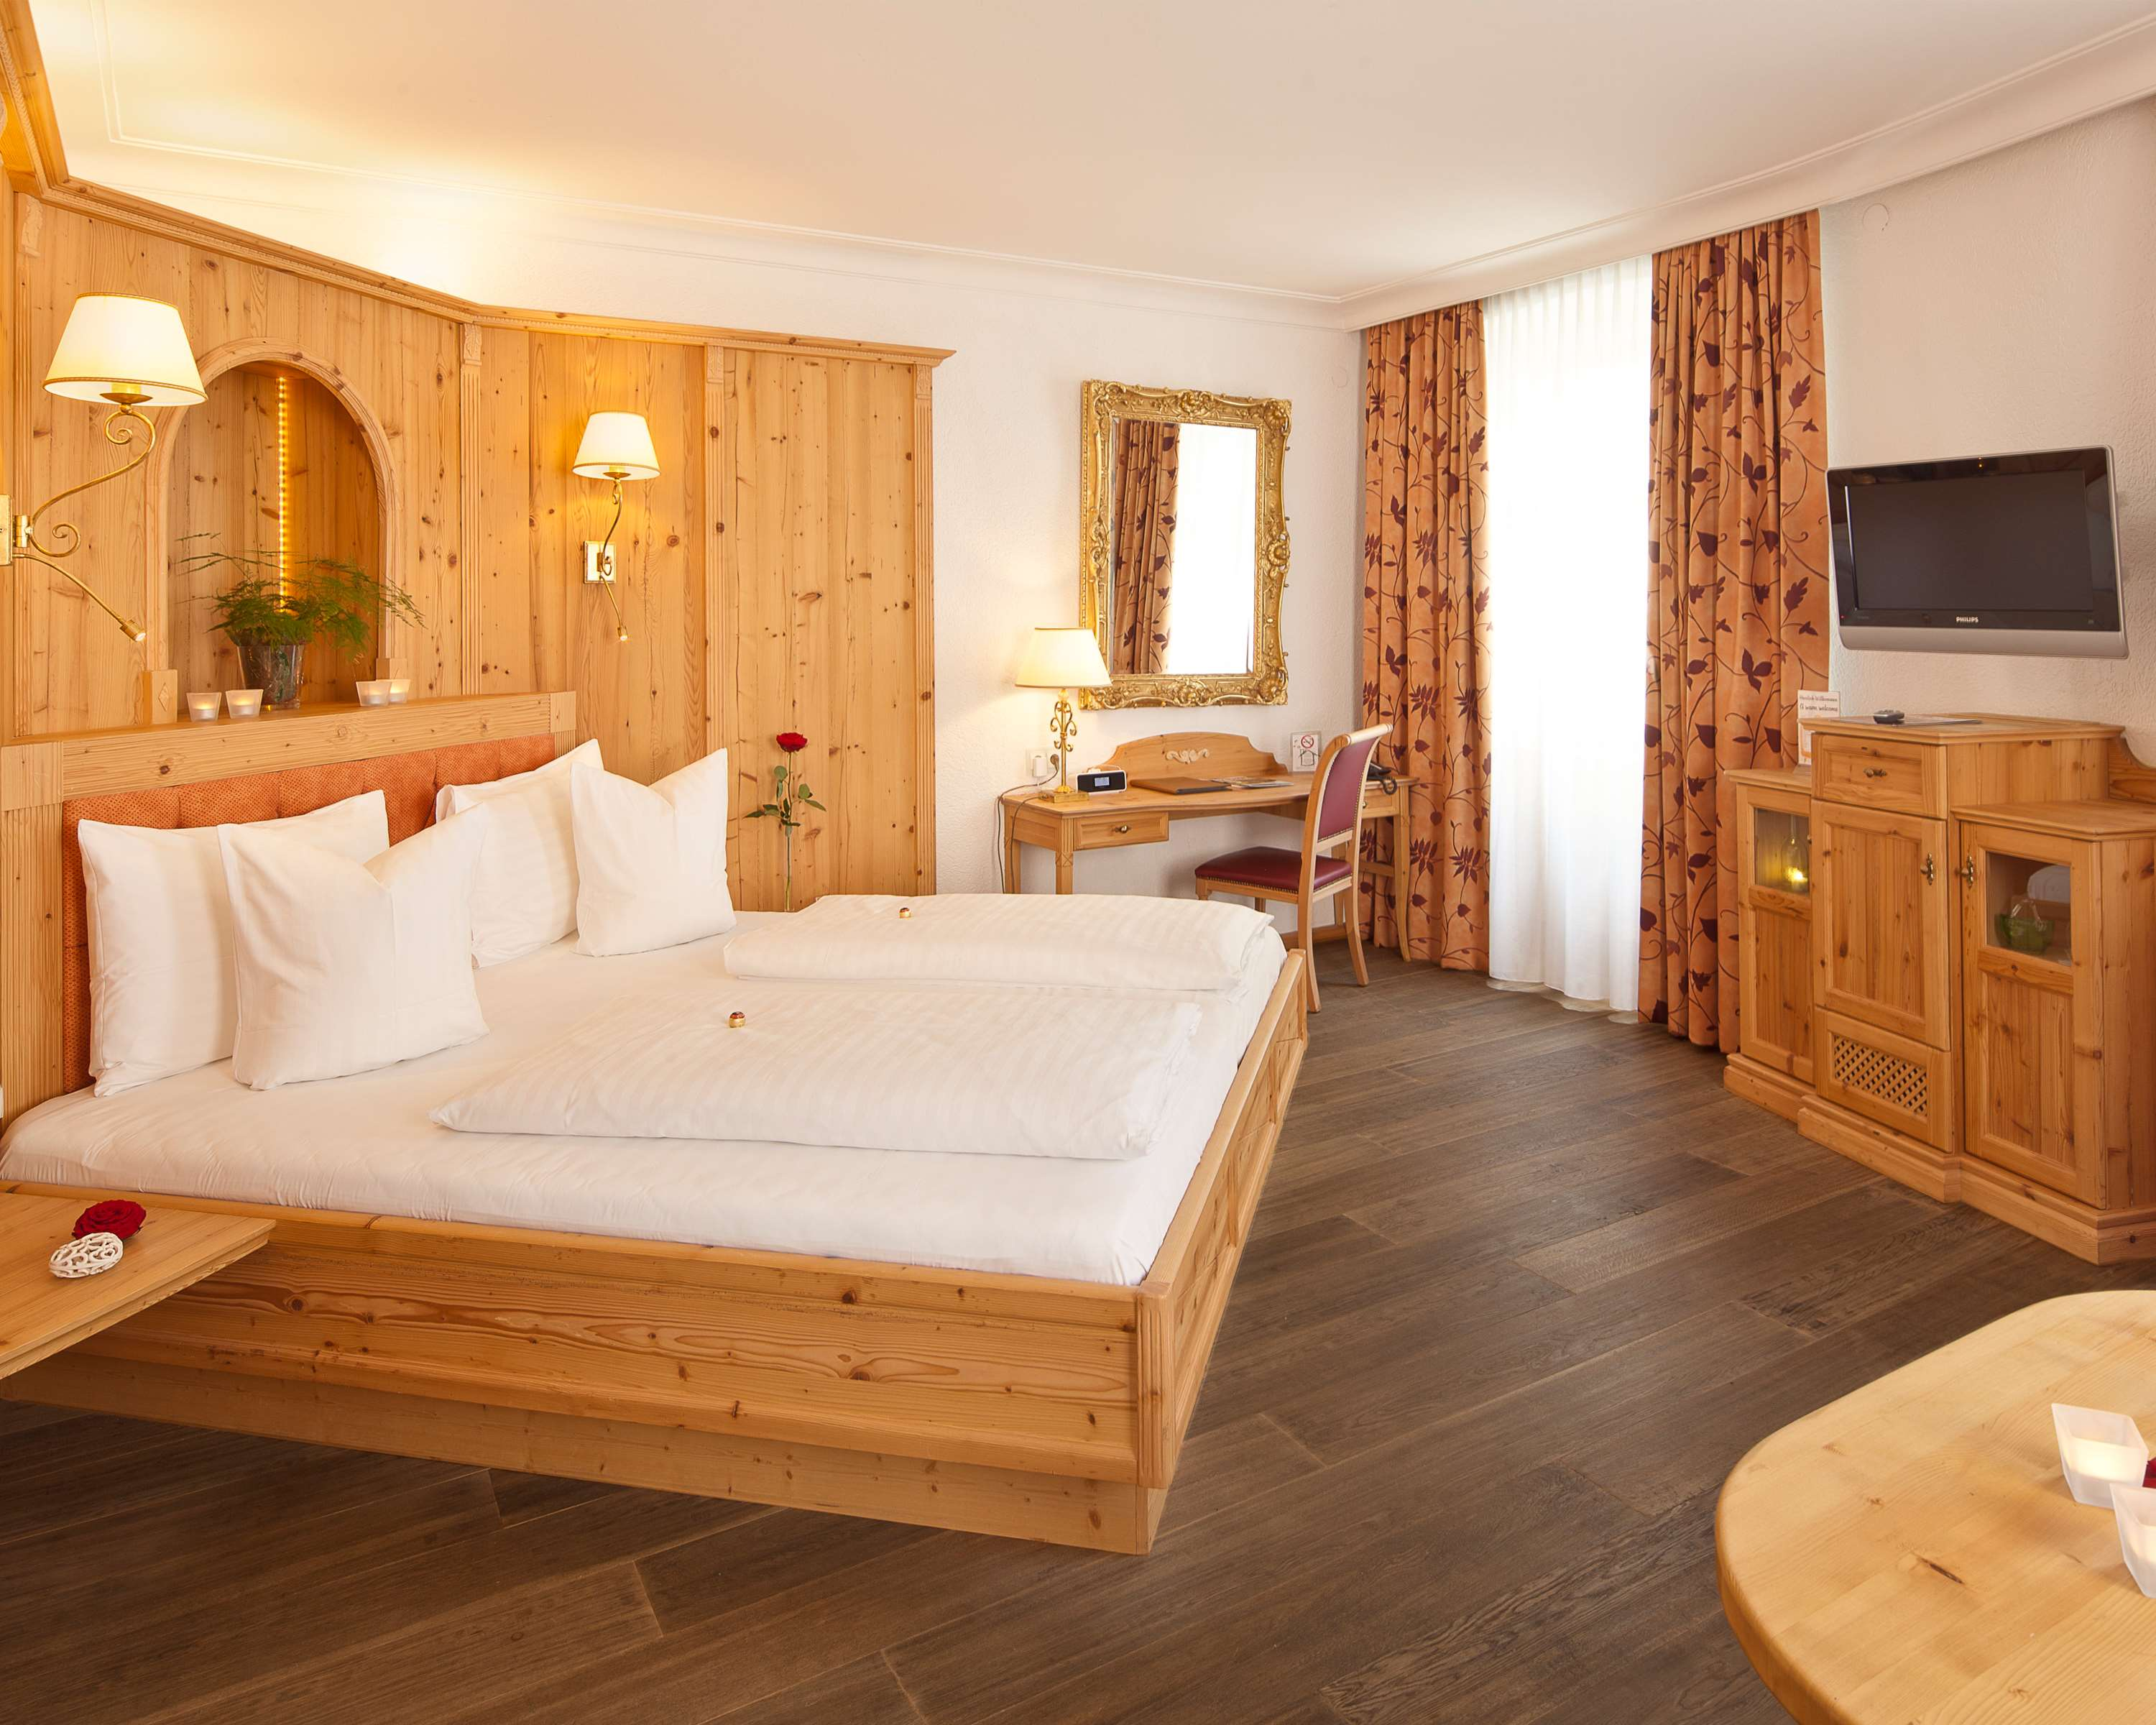 Best western plus hotel goldener adler hotels hotels for Design hotel stubaital